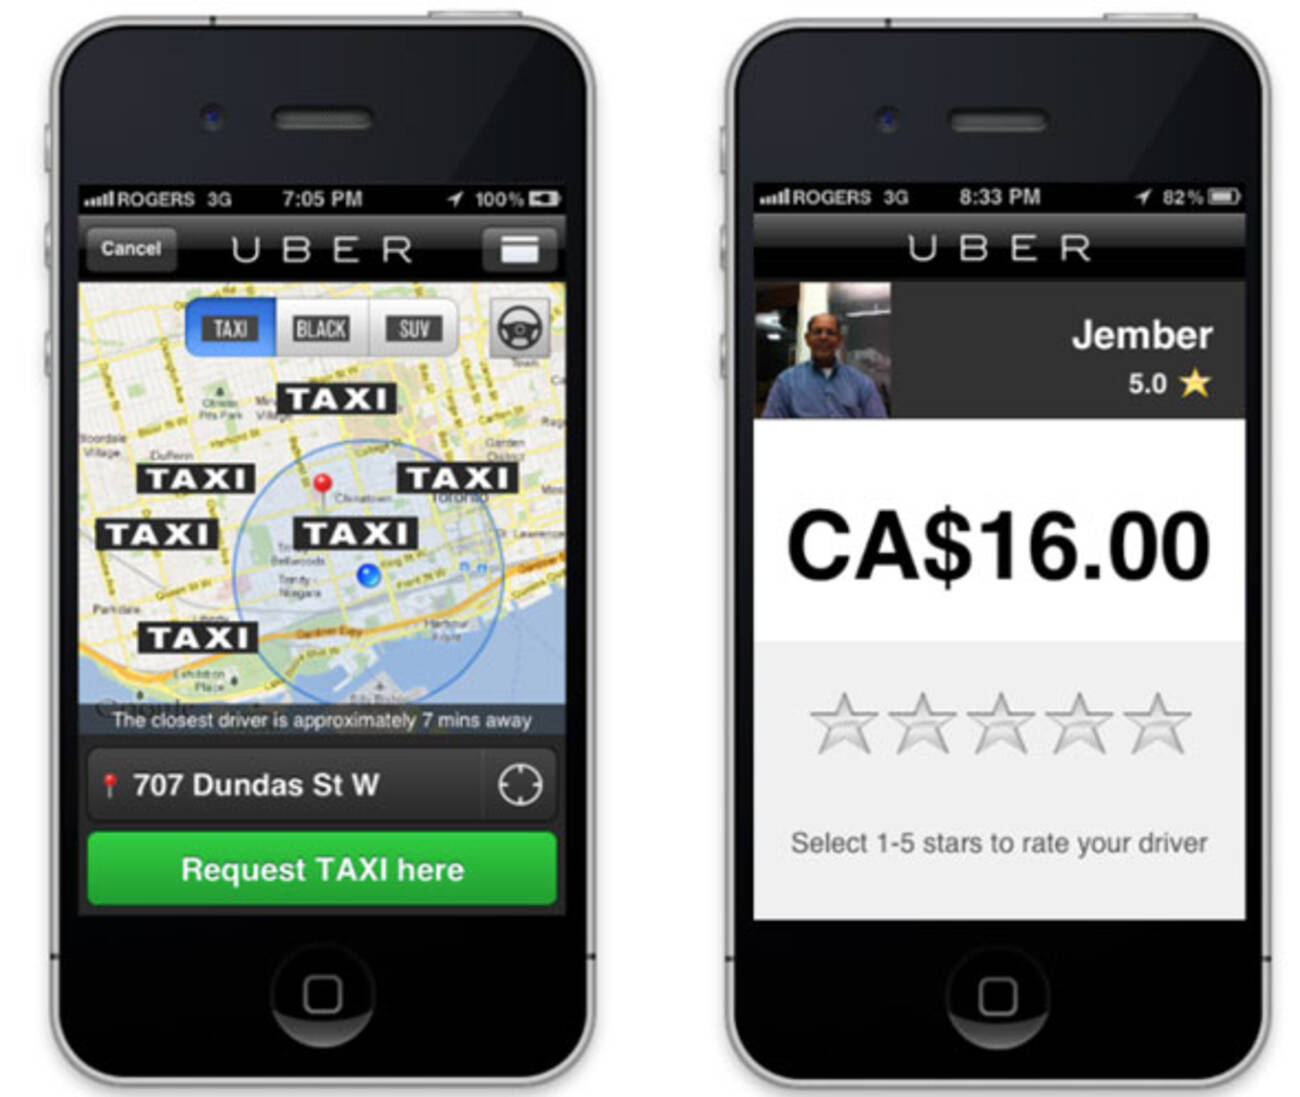 Uber Toronto Phone Number >> Uber launches taxi service in Toronto